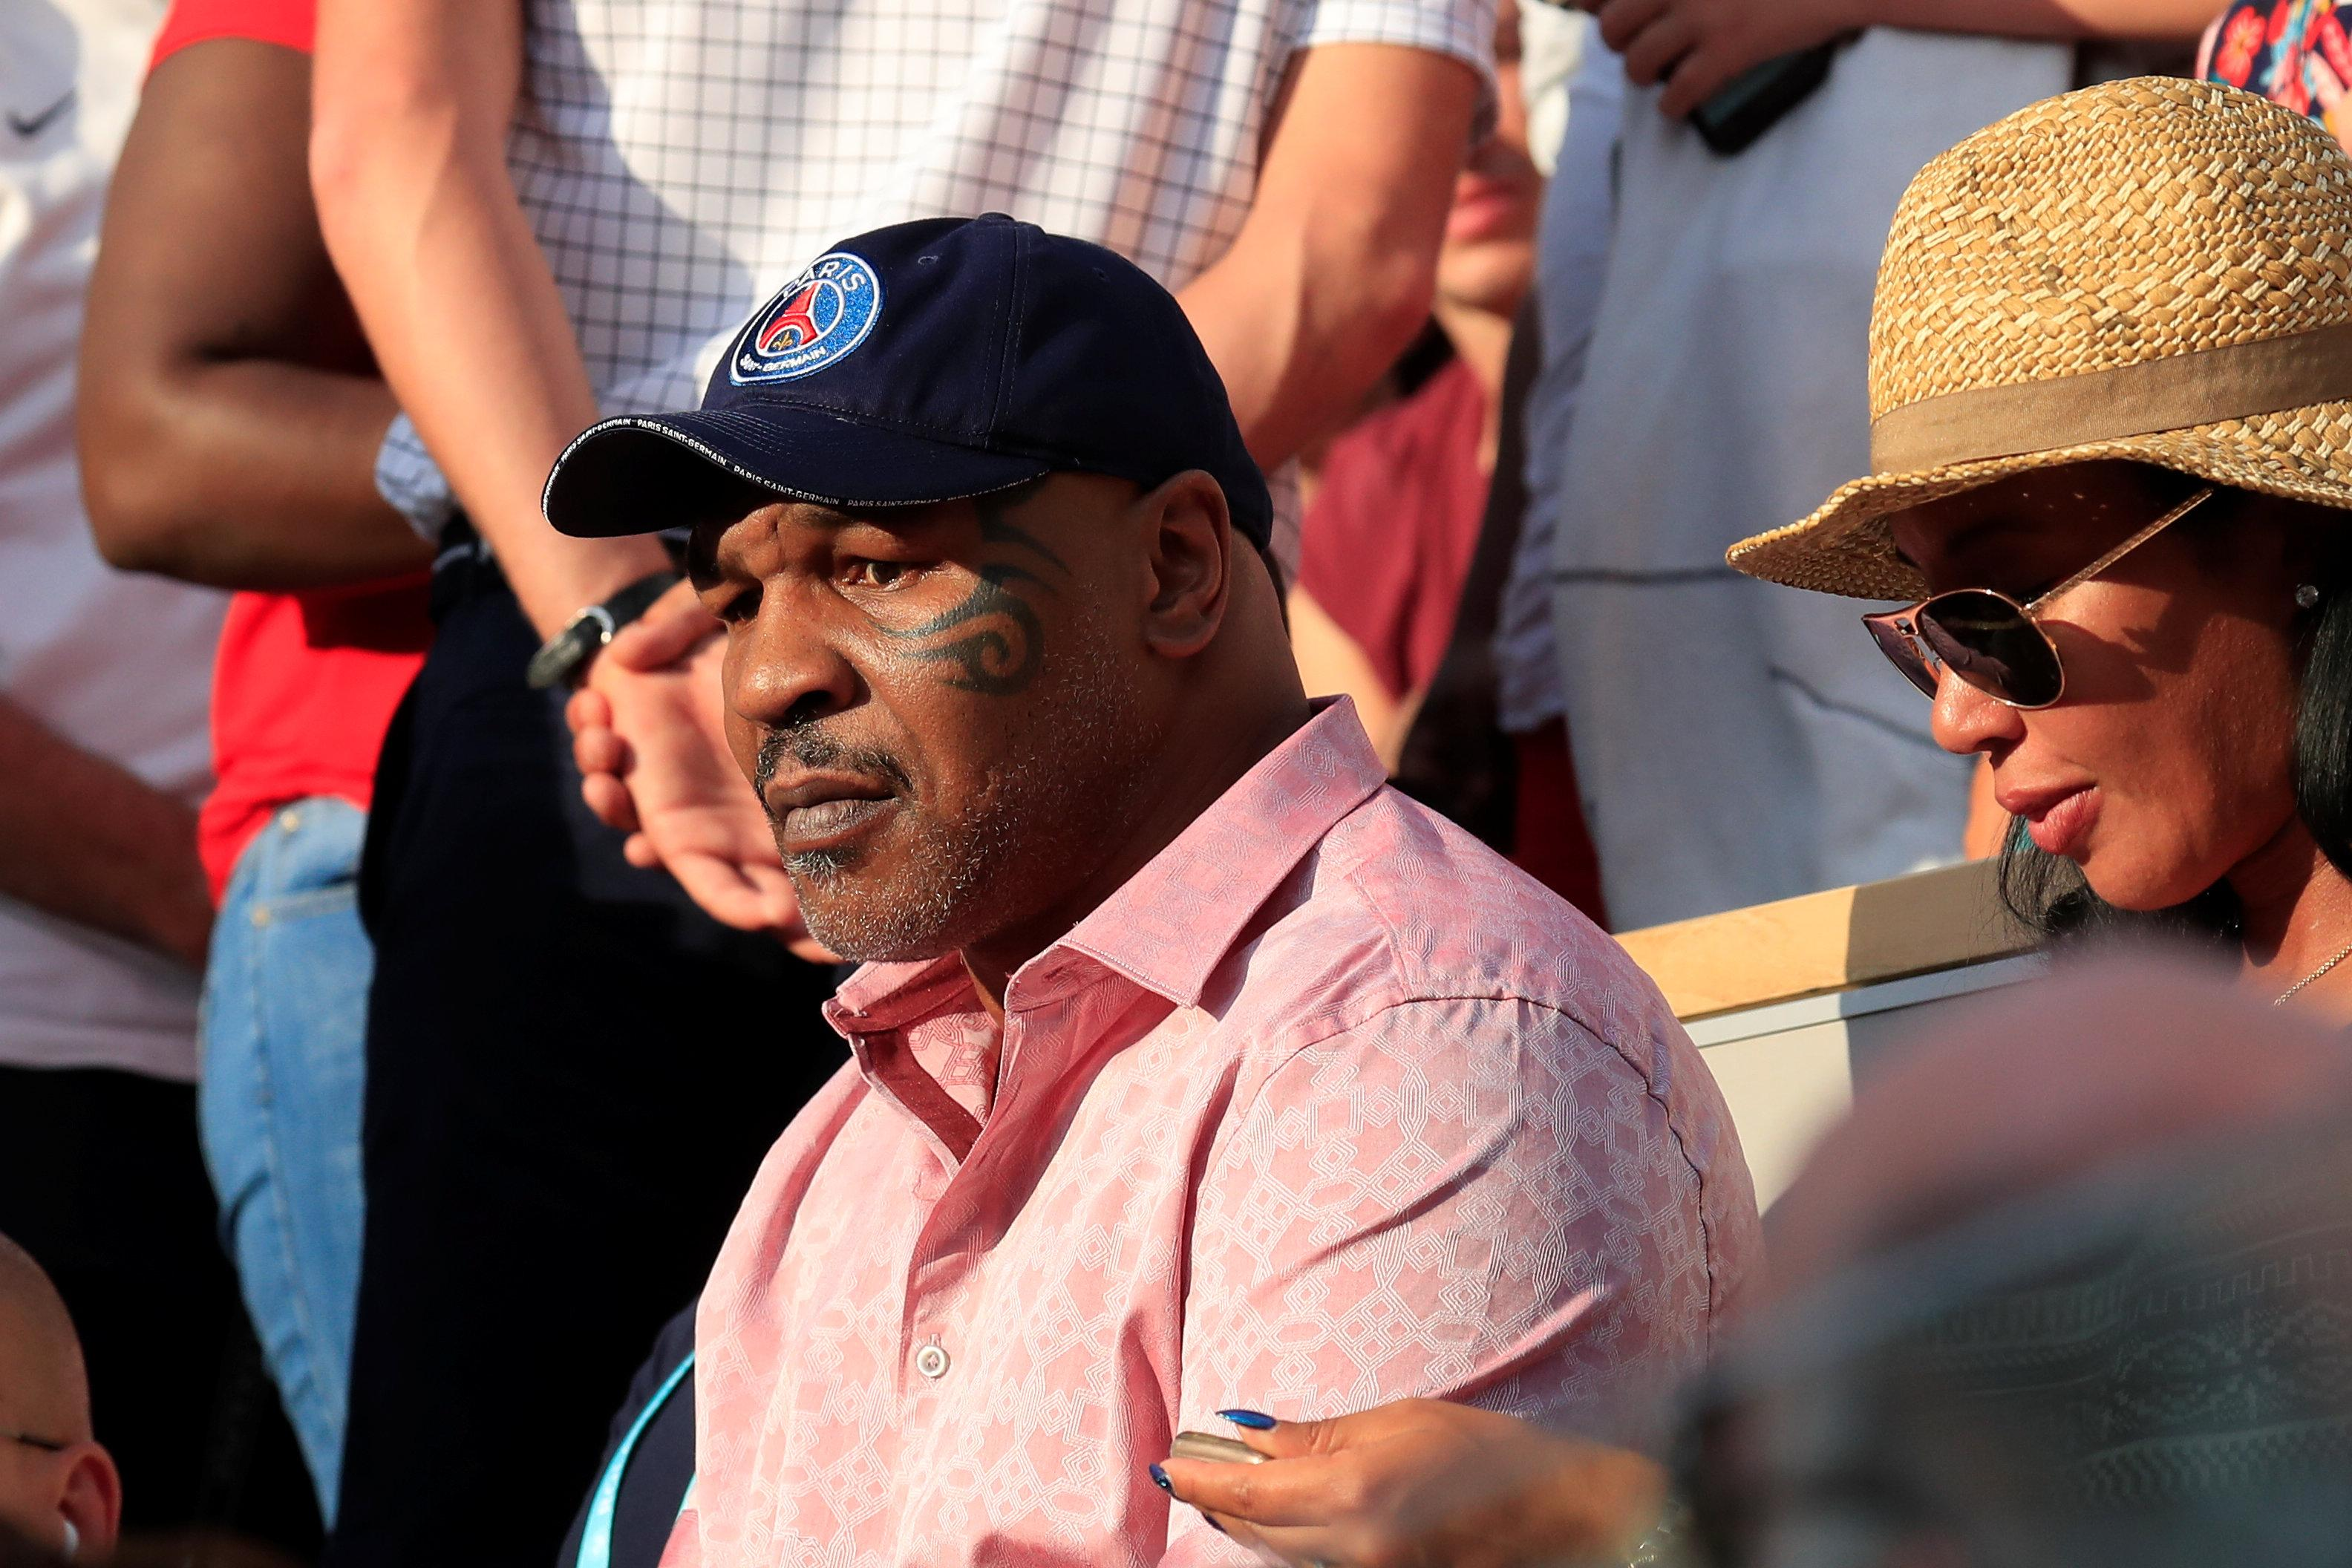 Mike Tyson watched the action from the stands in Paris